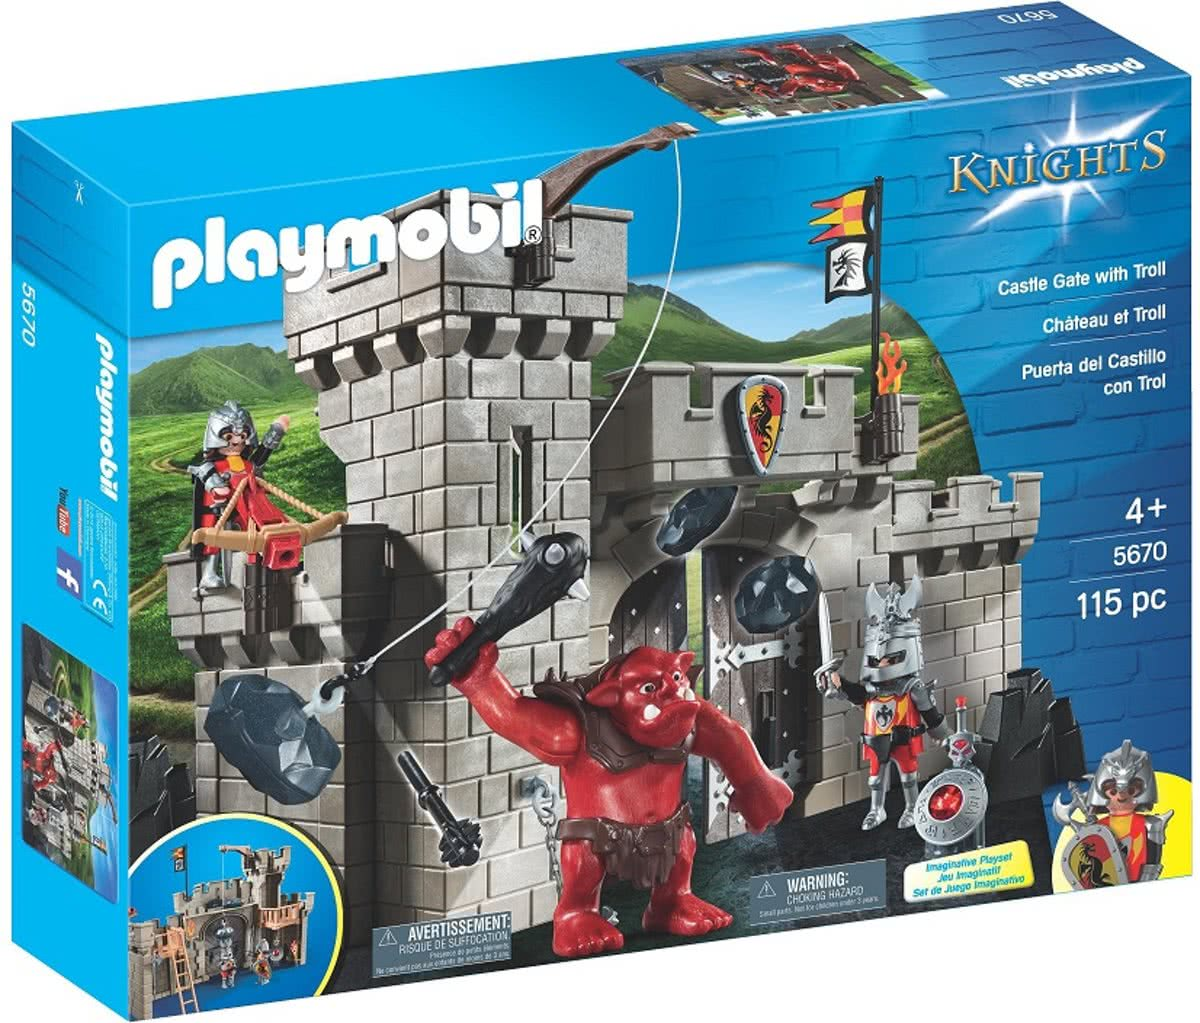 Playmobil 5670 Club Knights Castle